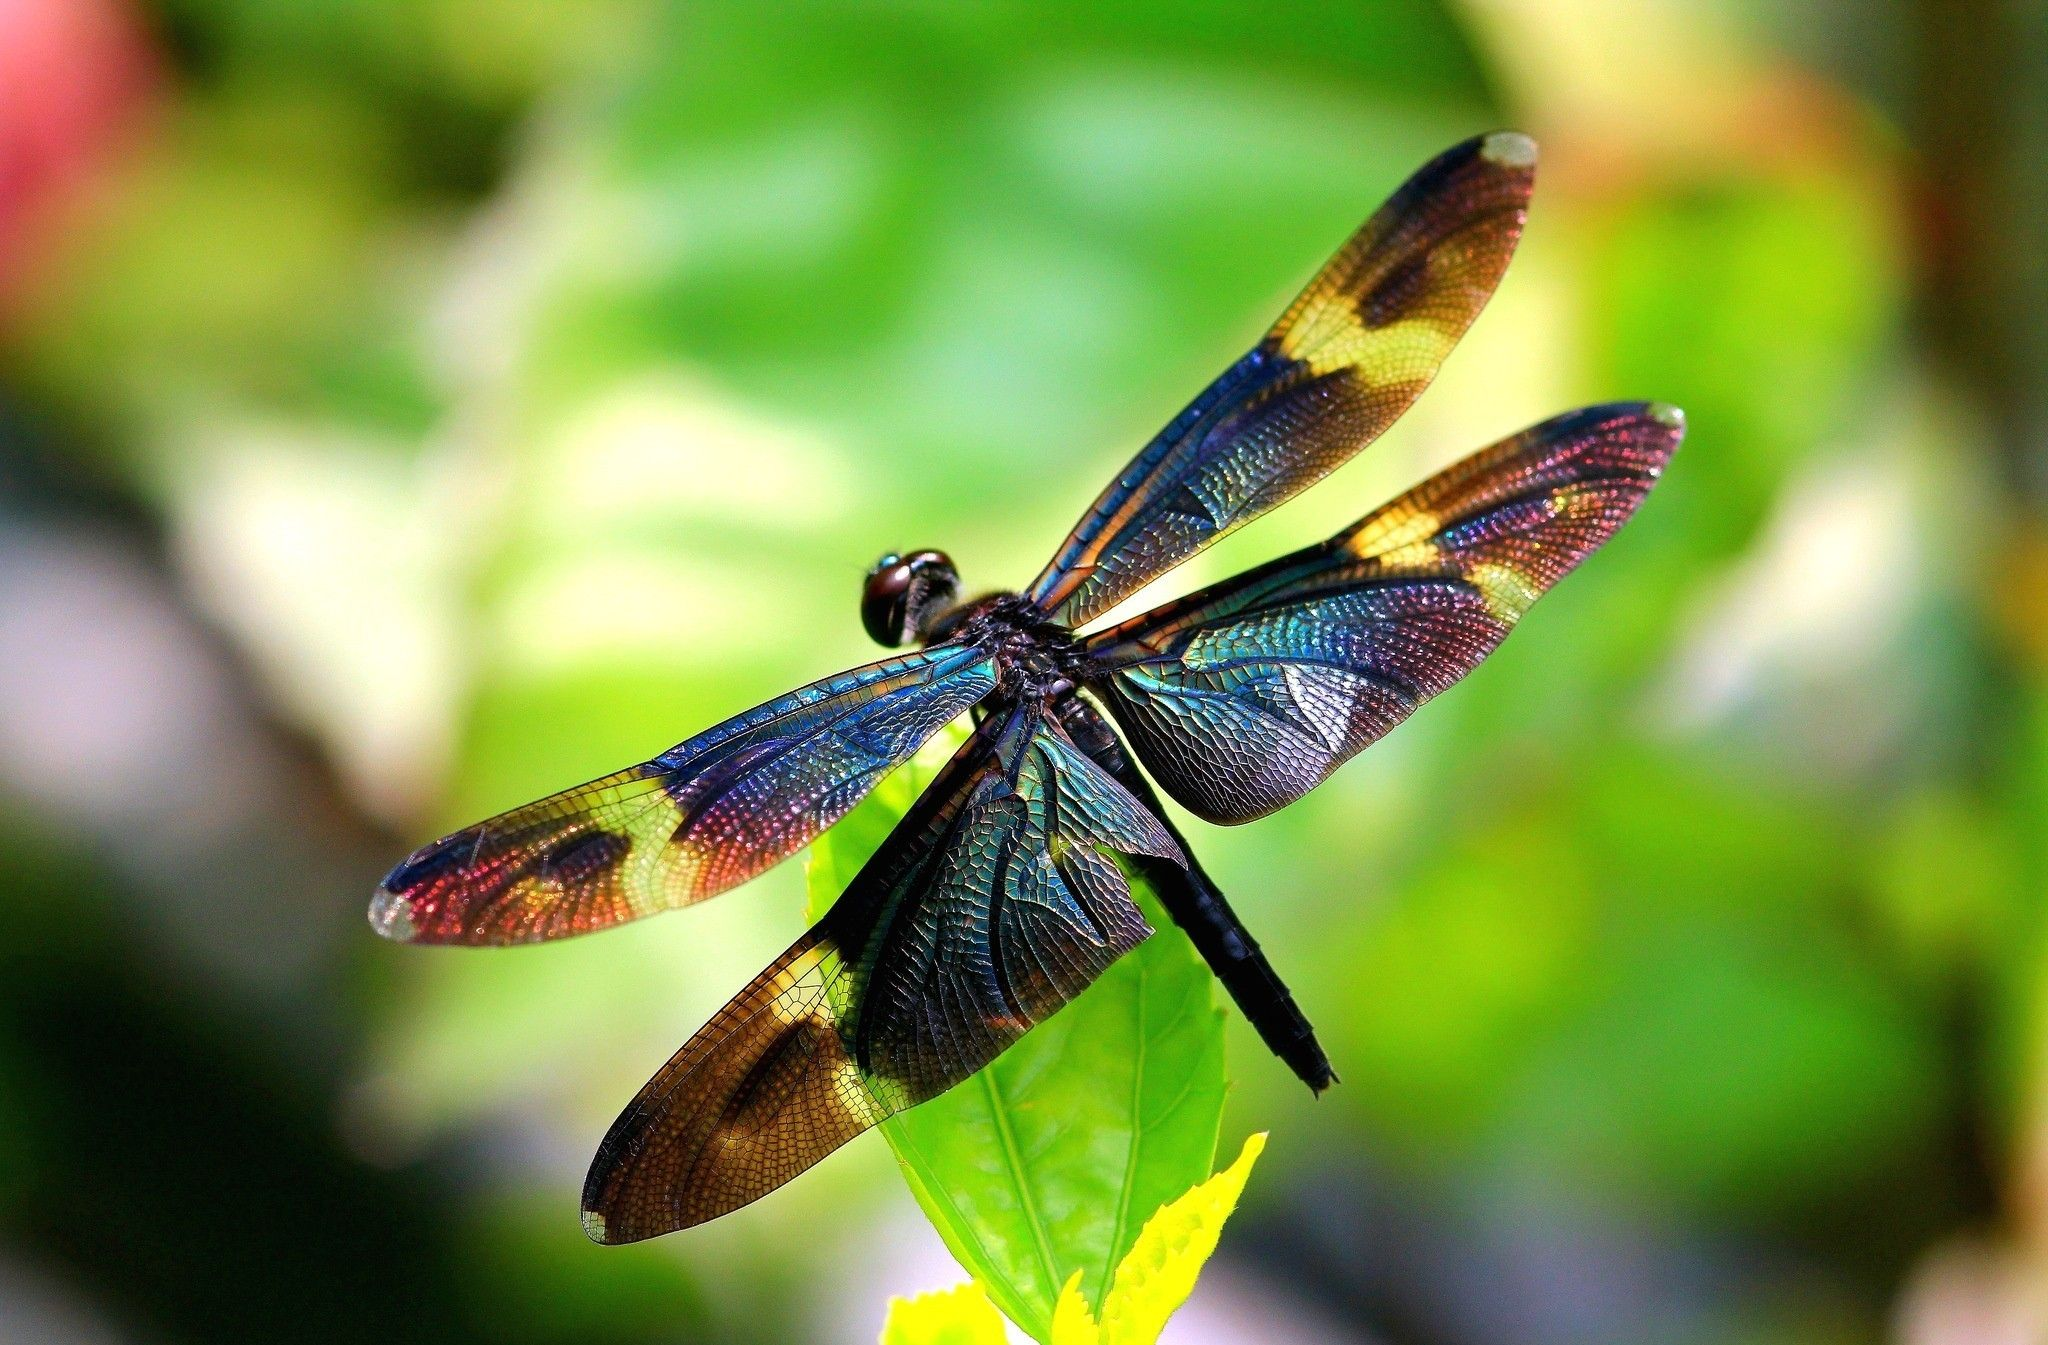 algoma residential community hospice - the dragonfly | georgeous